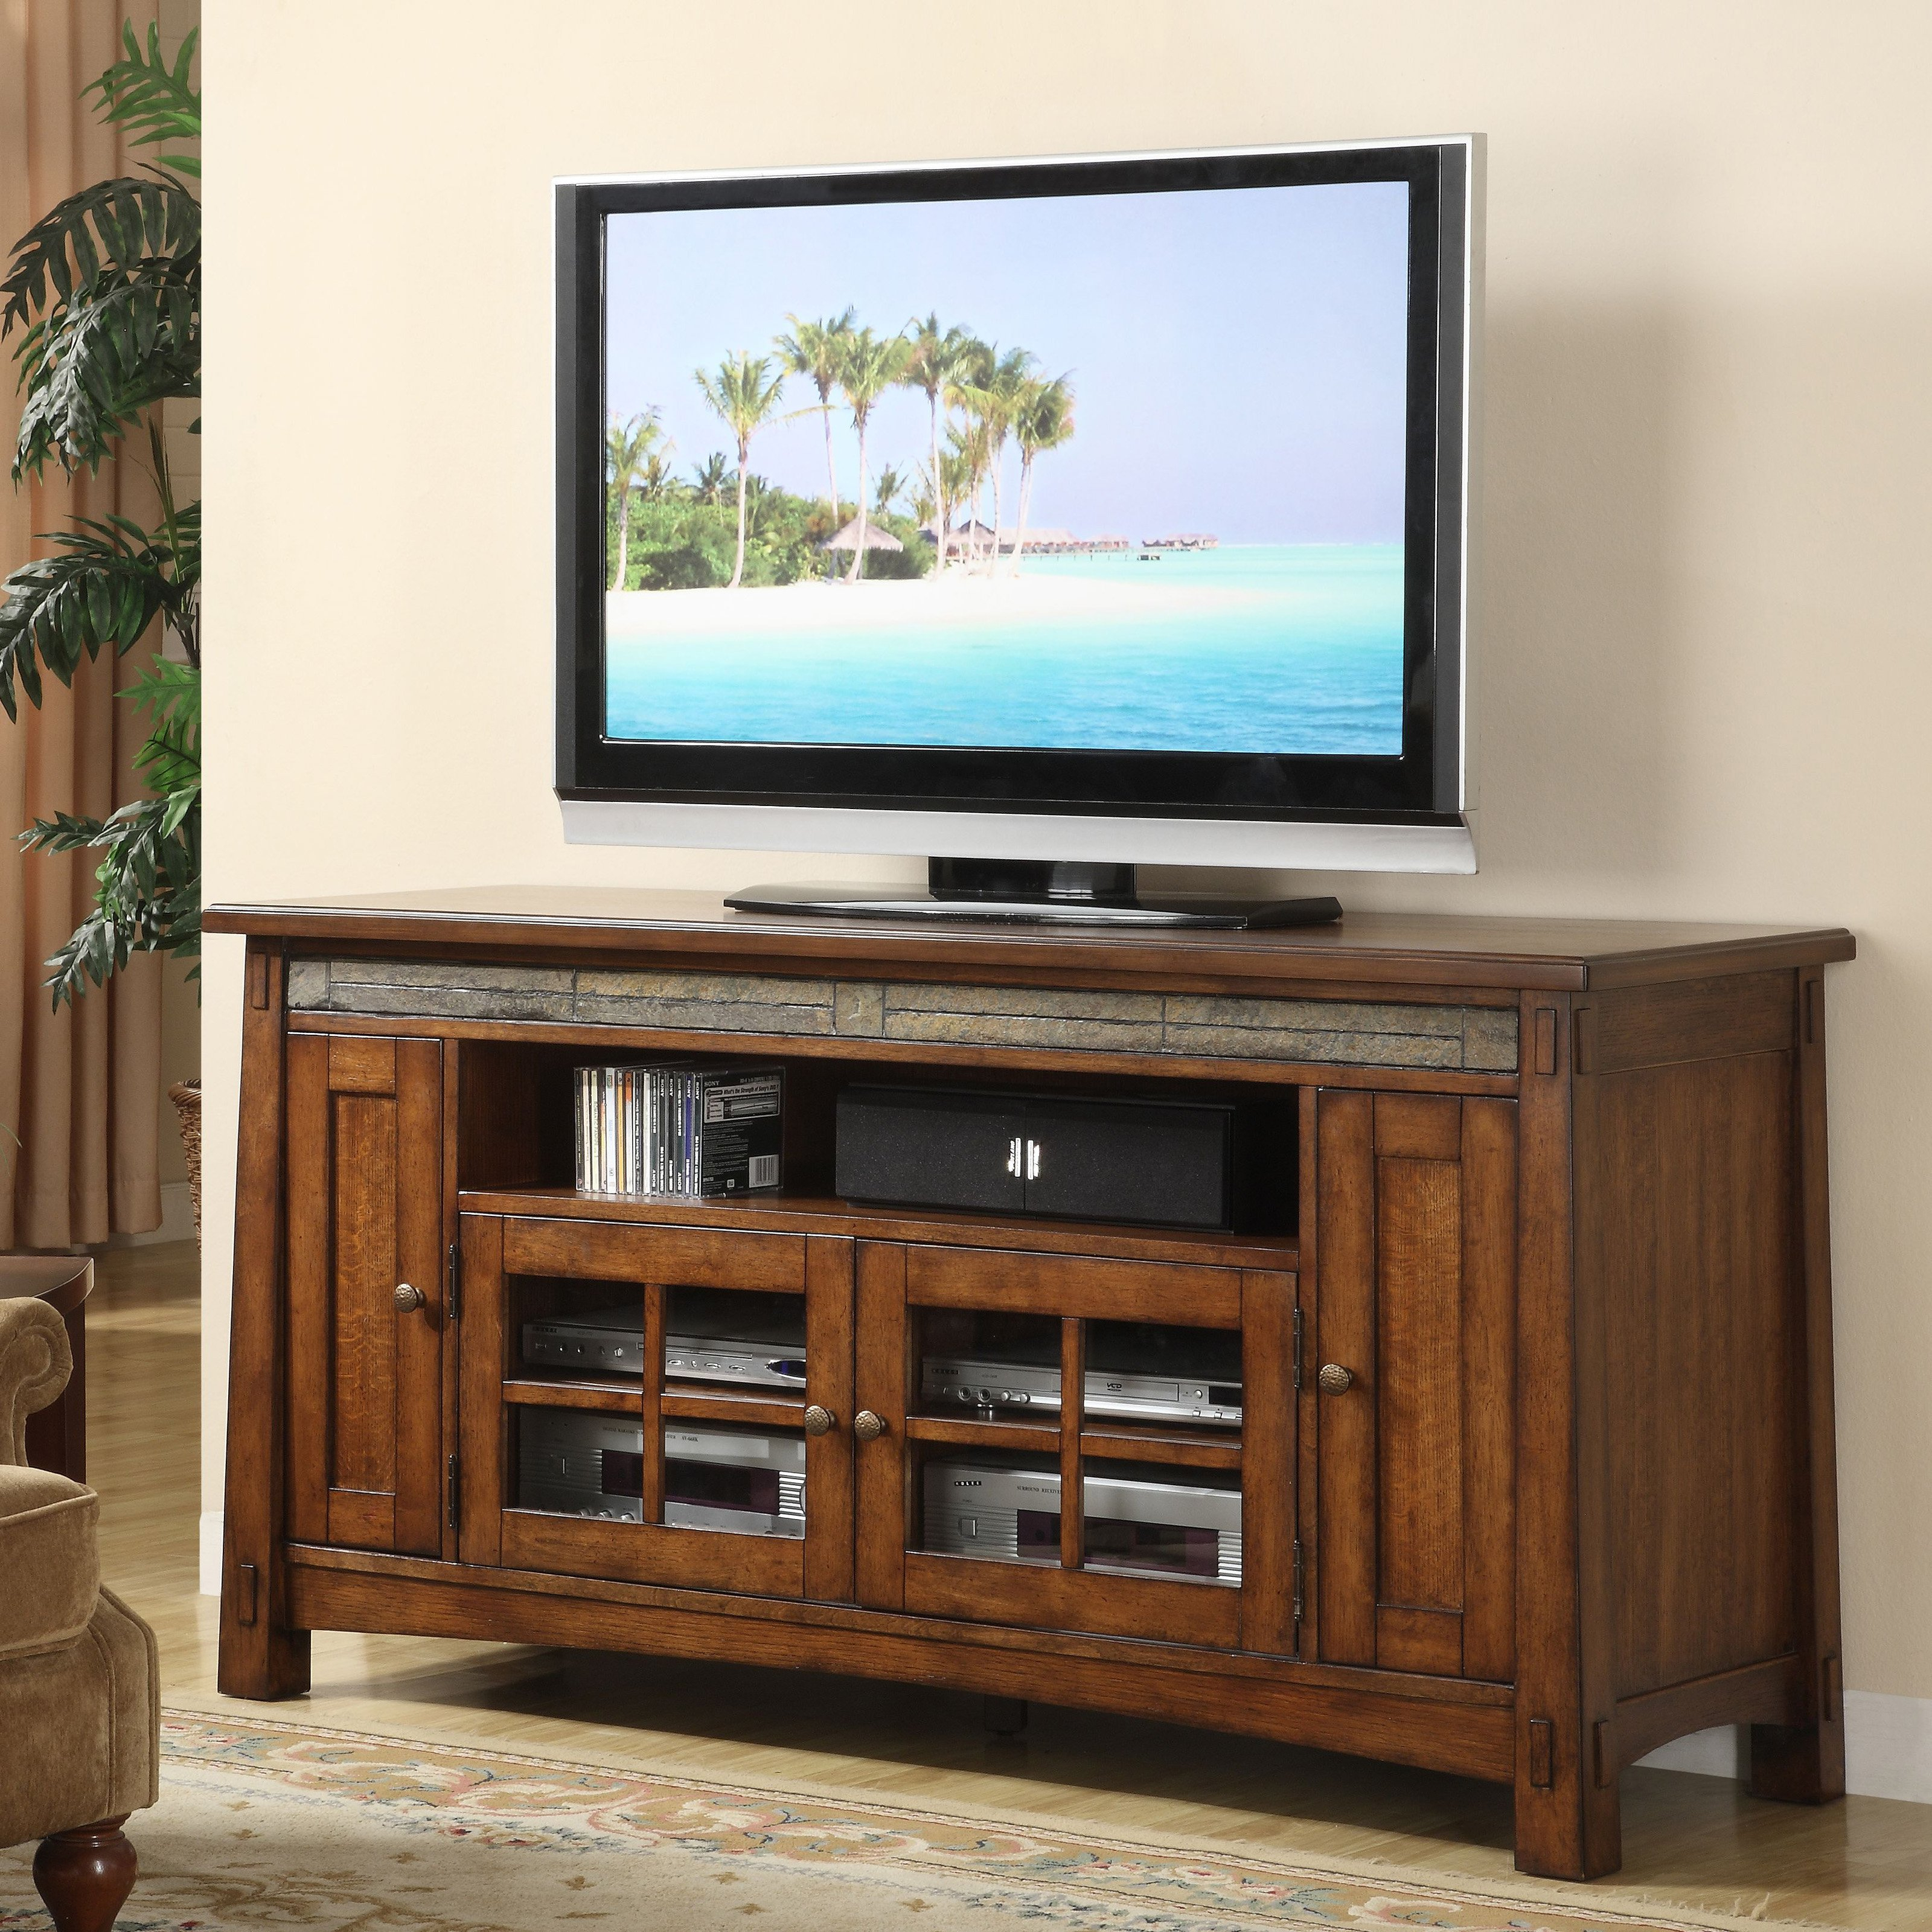 Nice To Tv Eco Geo Espresso Woodwaves In To Tv Eco Geo Espresso With Annabelle Cream 70 Inch Tv Stands (View 16 of 30)